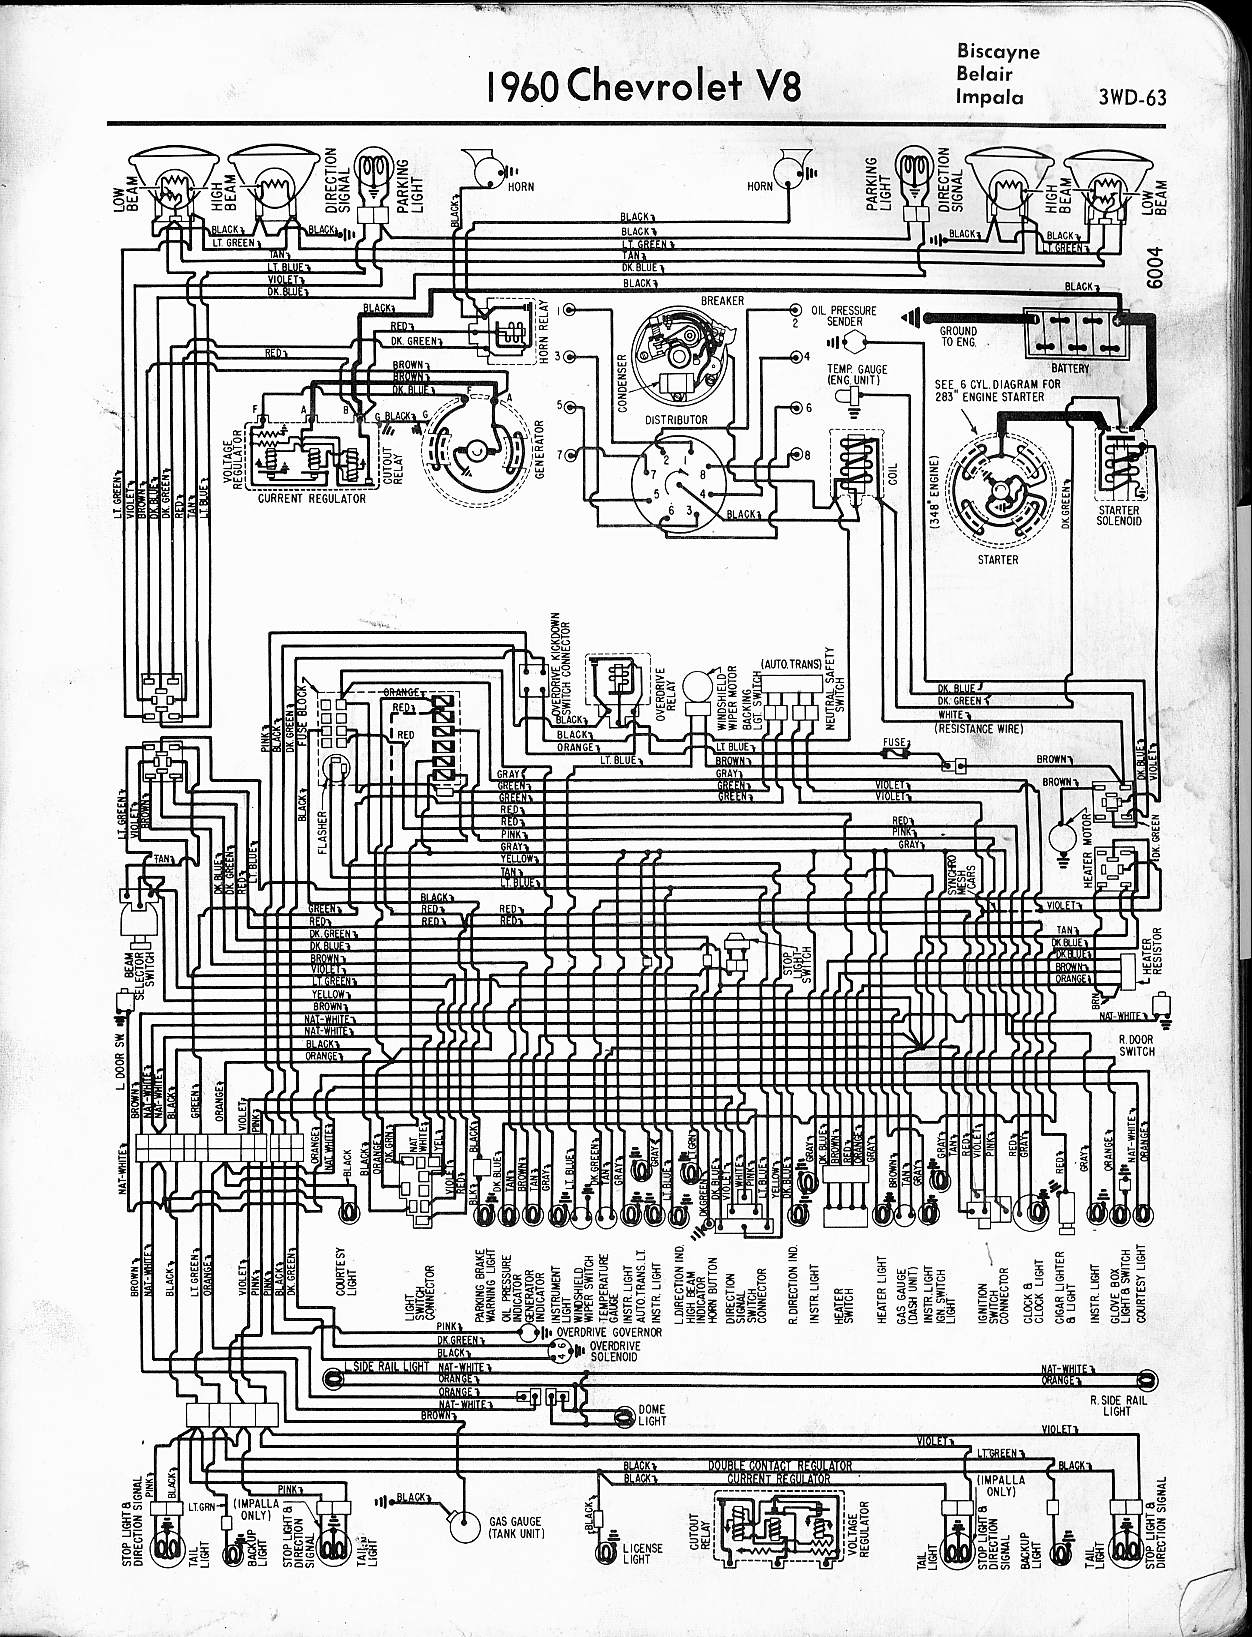 MWireChev60_3WD 063 57 65 chevy wiring diagrams 1964 impala headlight switch wiring diagram at webbmarketing.co